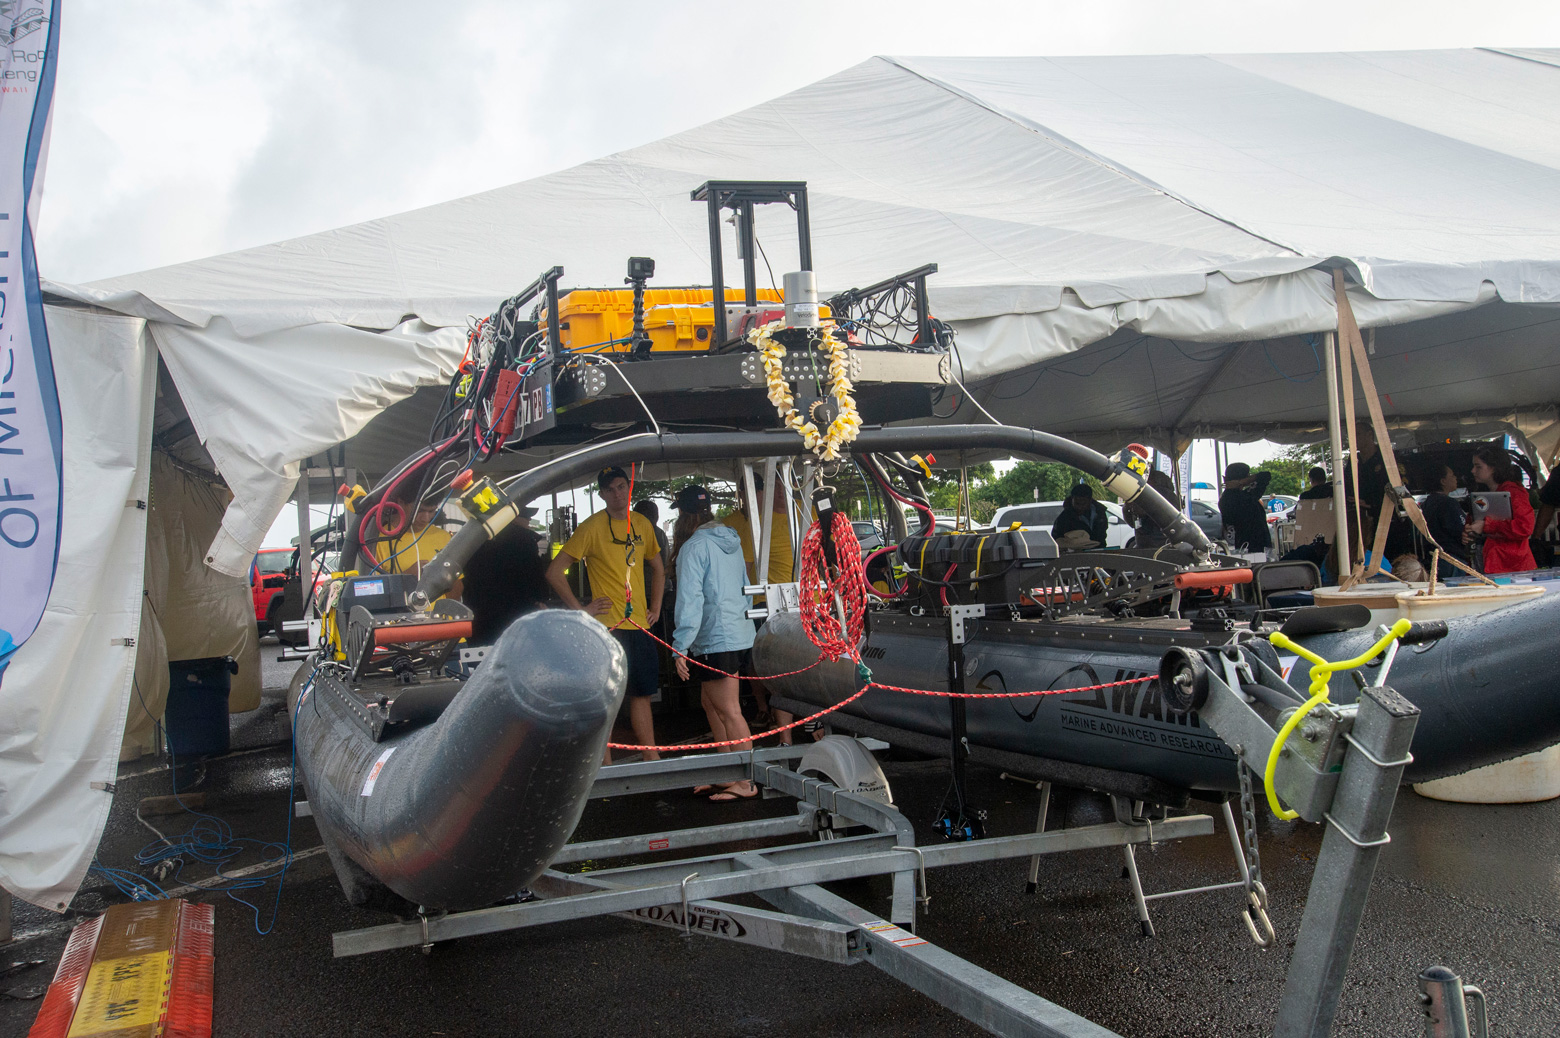 The Michigan RobotX team competed in the 2018 Maritime RobotX Challenge in Honolulu on Dec. 8-15. Photo: Michigan RobotX